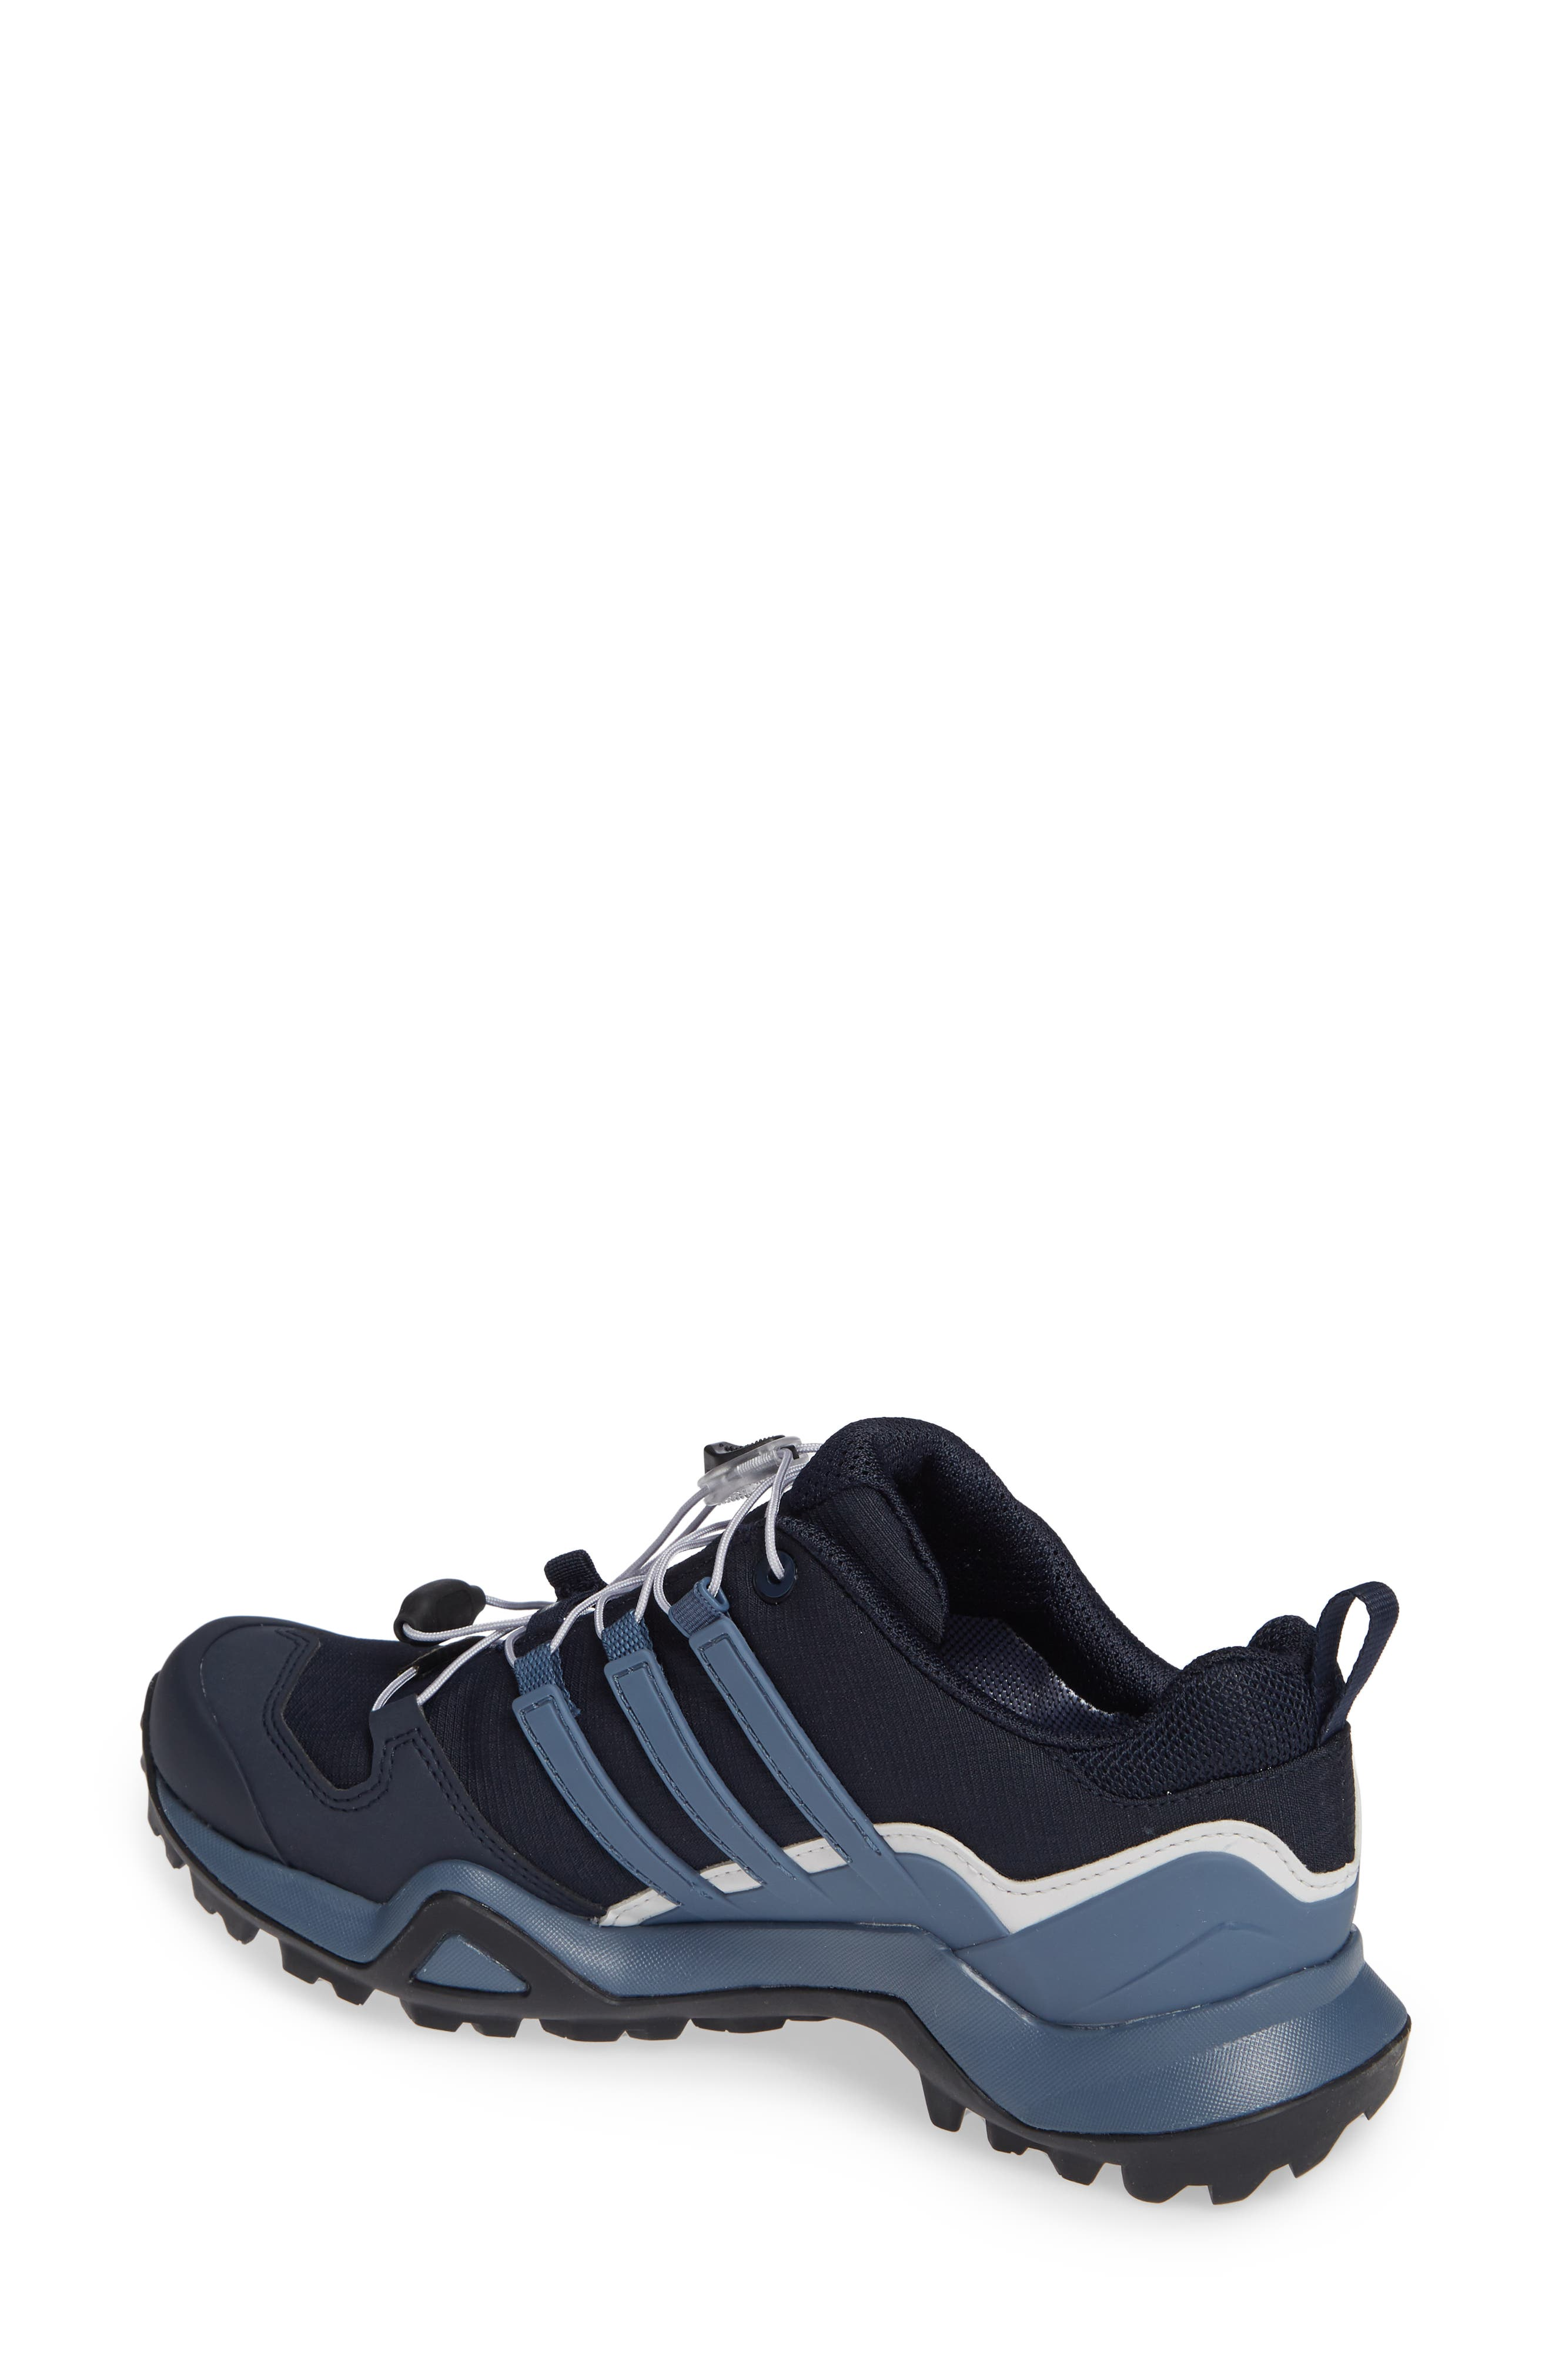 Terrex Swift R2 Gore-Tex<sup>®</sup> Hiking Shoe,                             Alternate thumbnail 2, color,                             LEGEND INK/ TECH INK/ GREY